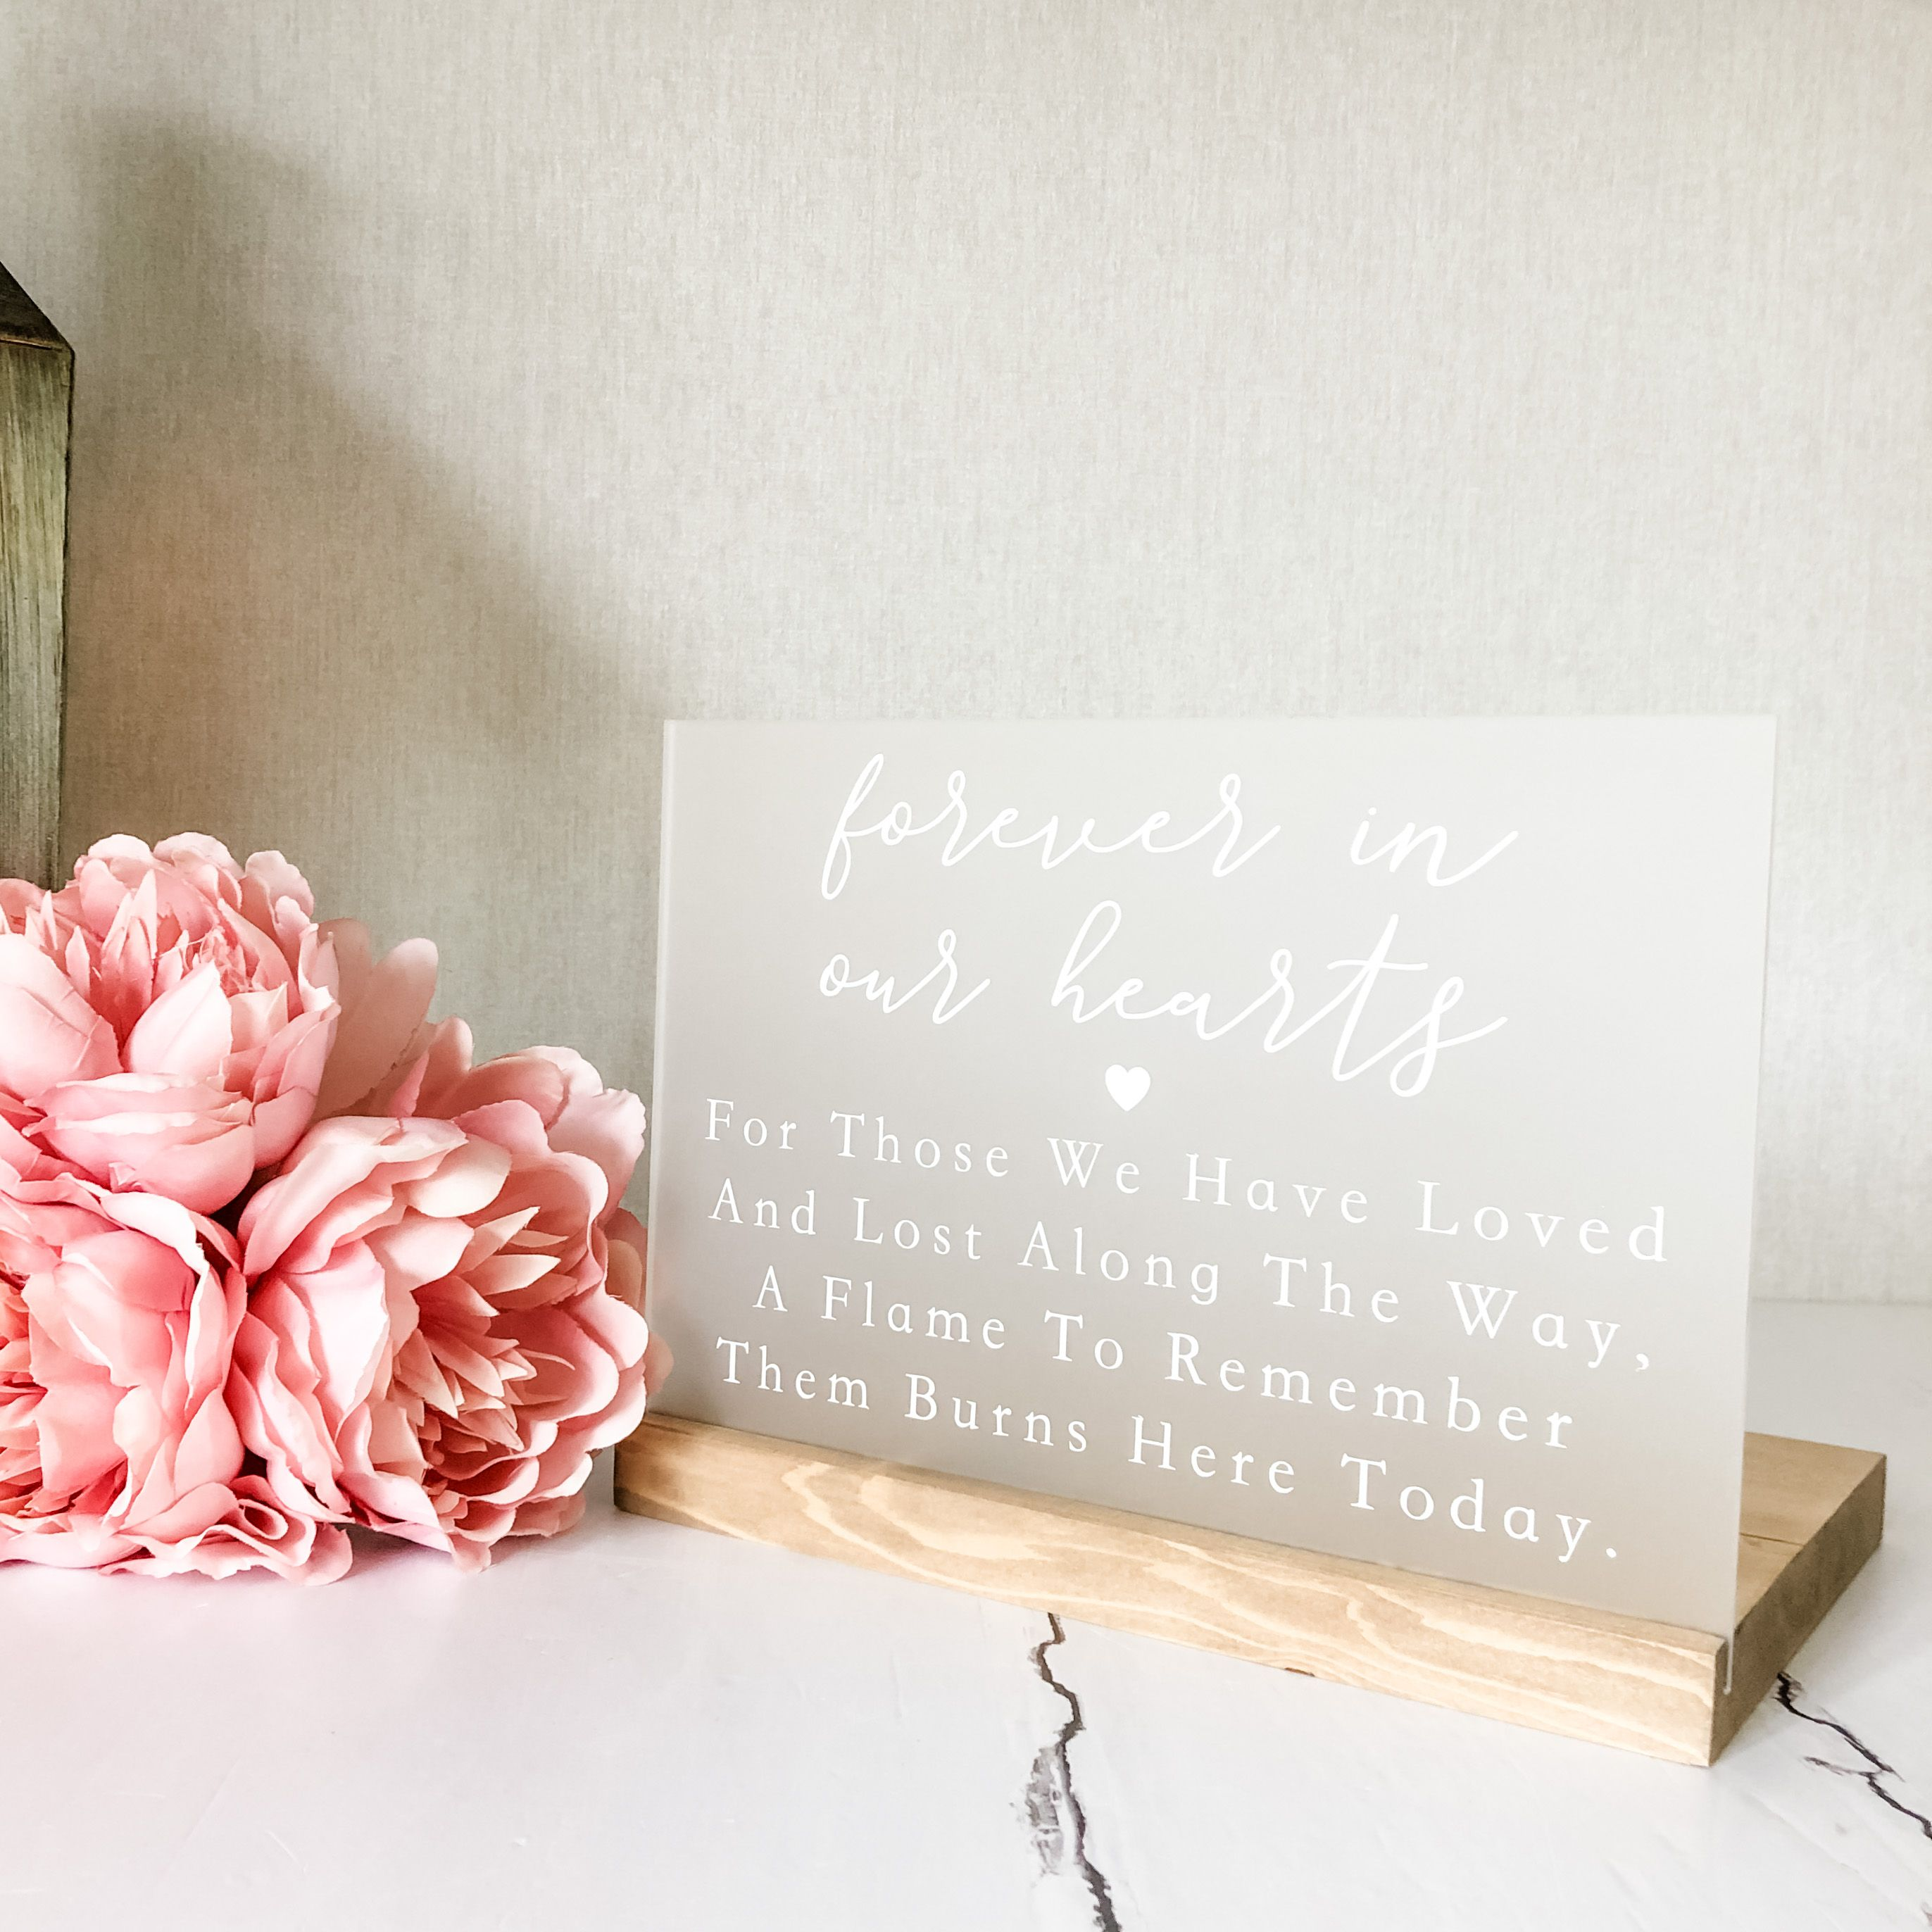 Acrylic Wedding Memorial Sign With Wood Stand in 2020